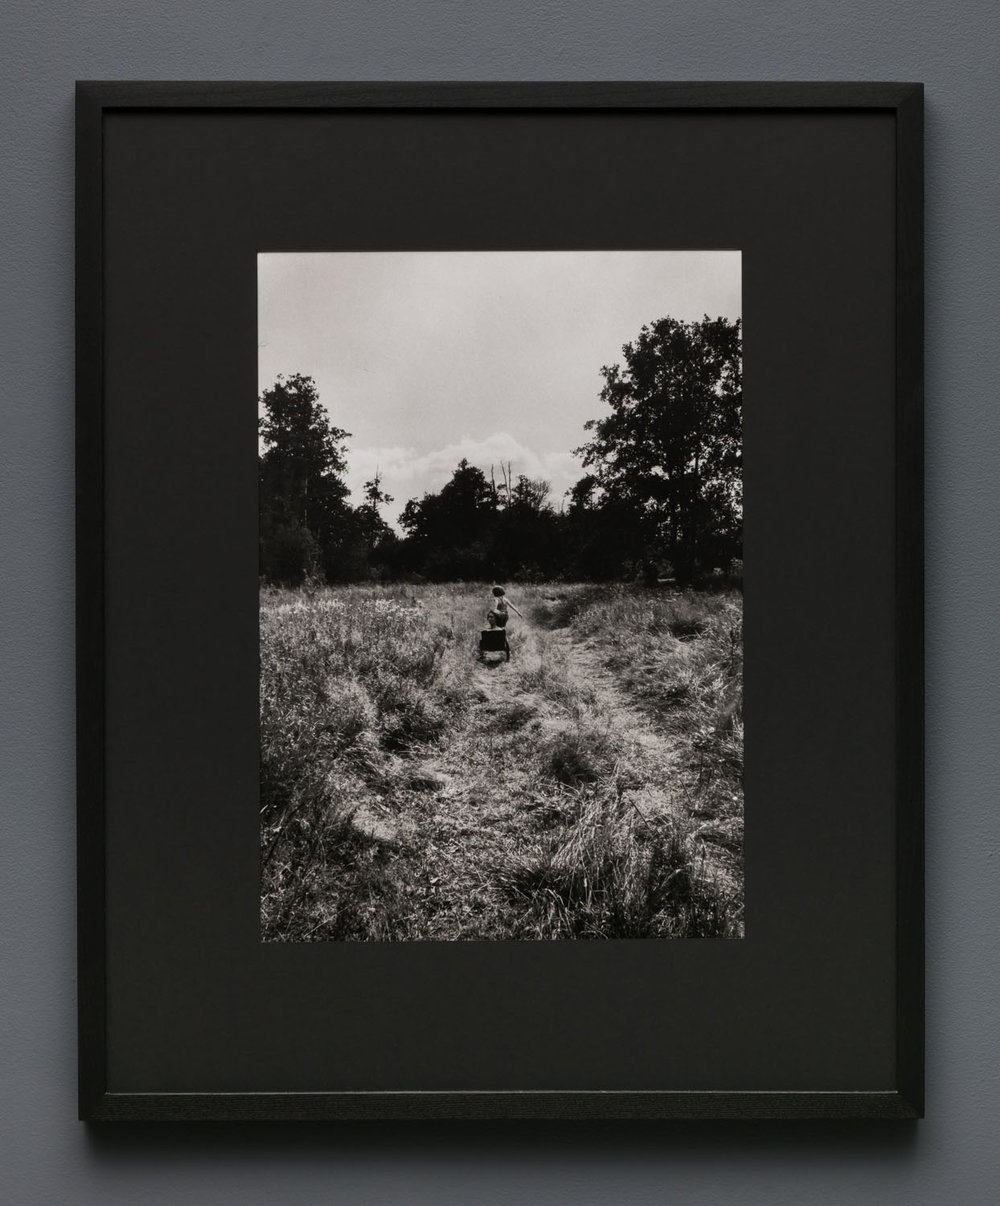 Aneta Grzeszykowska   Mama #43 , 2018  Silver gelatin print  Hand printed by the Artist  19.625 x 14.145 inches  29.5 x 24 inches (framed)  Edition of 5 + I A.P.